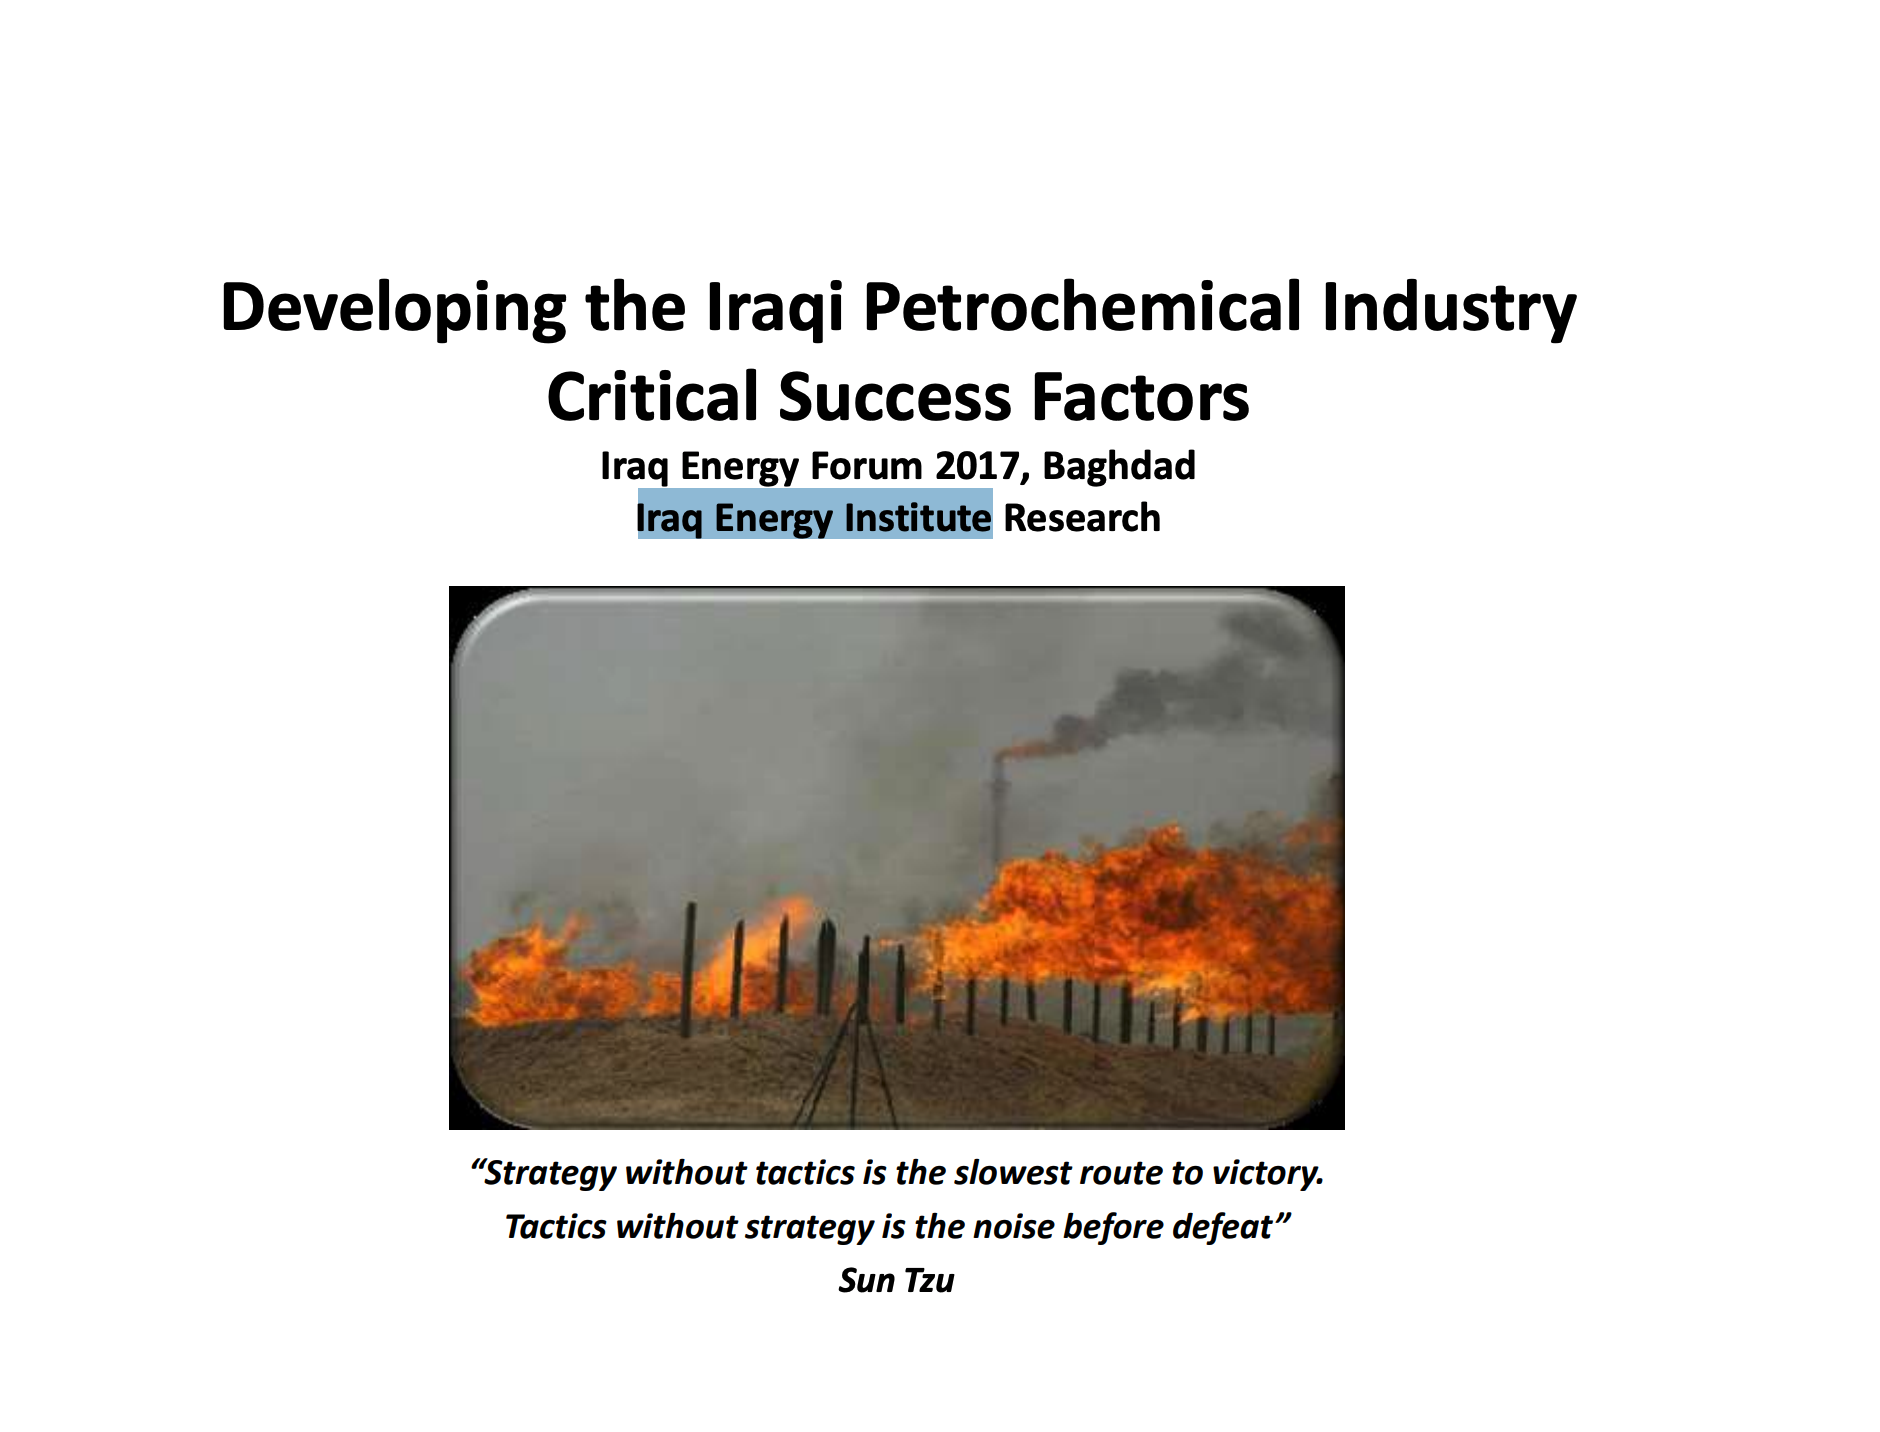 Developing the Iraqi Petrochemical Industry Critical Success Factors